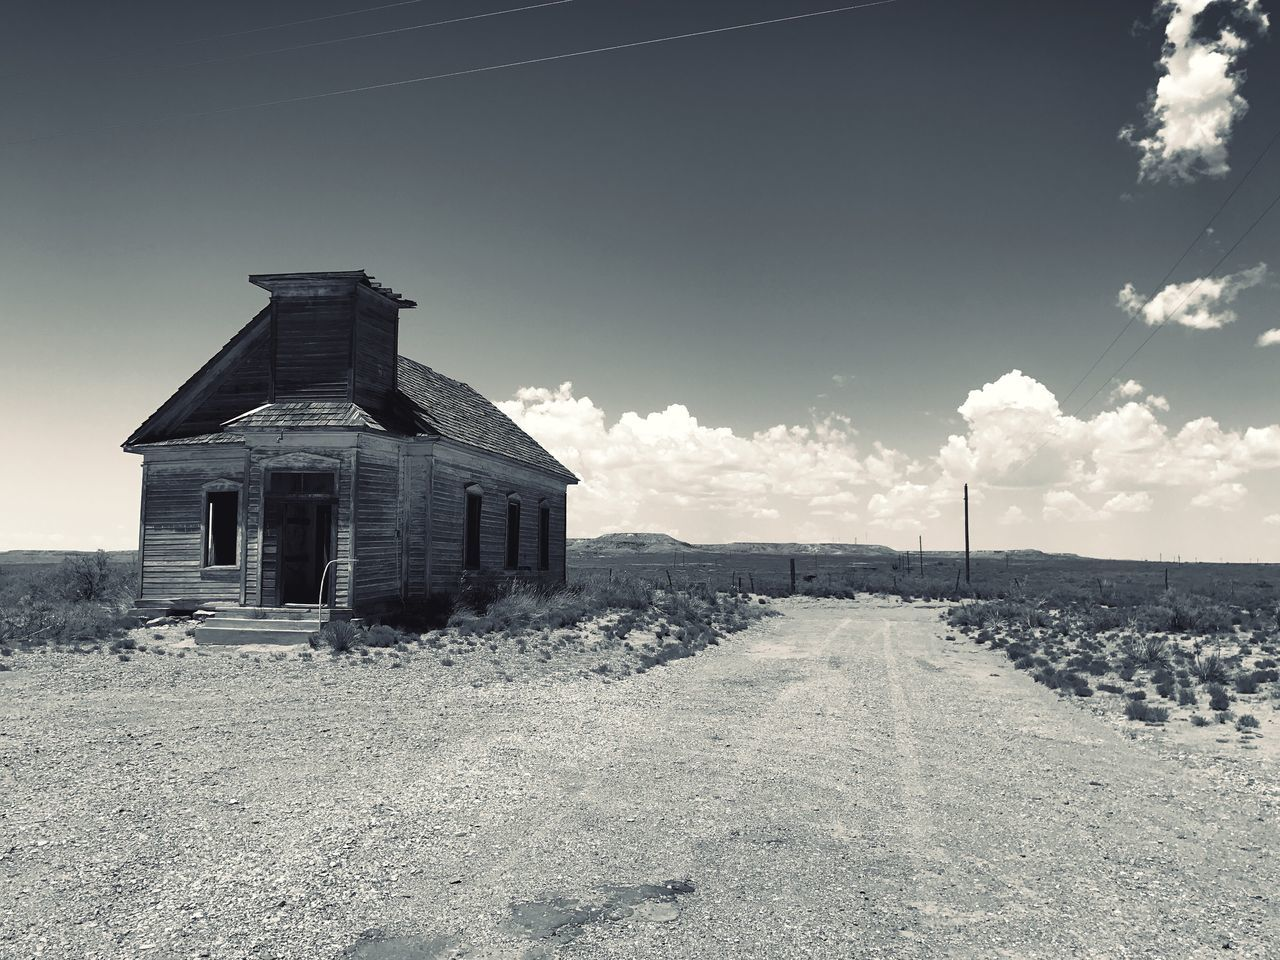 sky, architecture, built structure, abandoned, no people, outdoors, day, building exterior, nature, rural scene